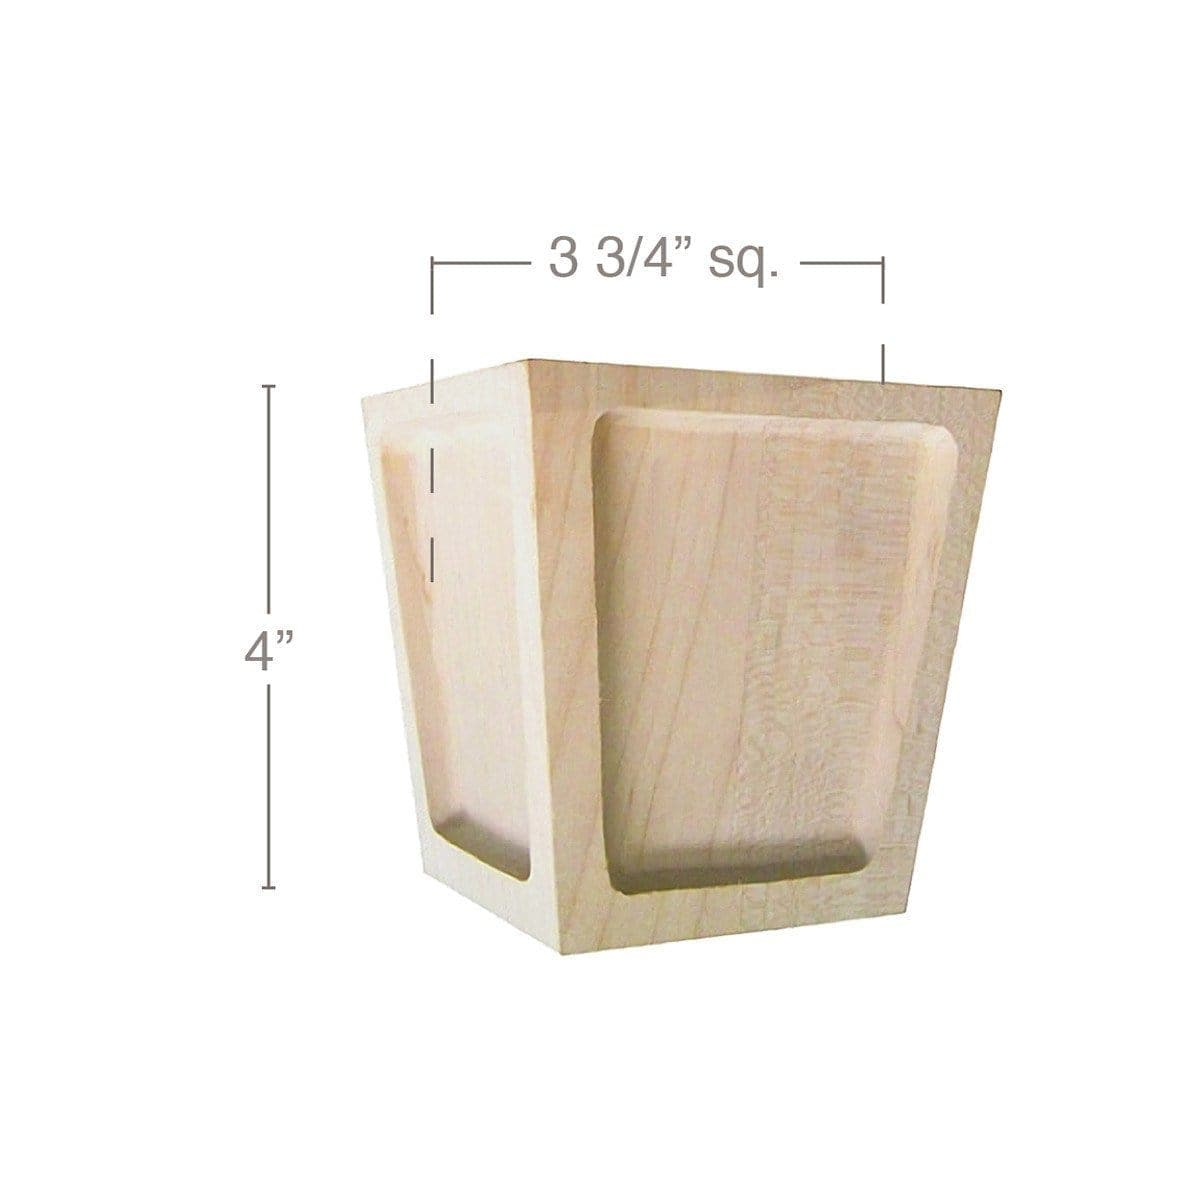 "Mission Square Bun Foot, 3 3/4""sq. x 4""h"